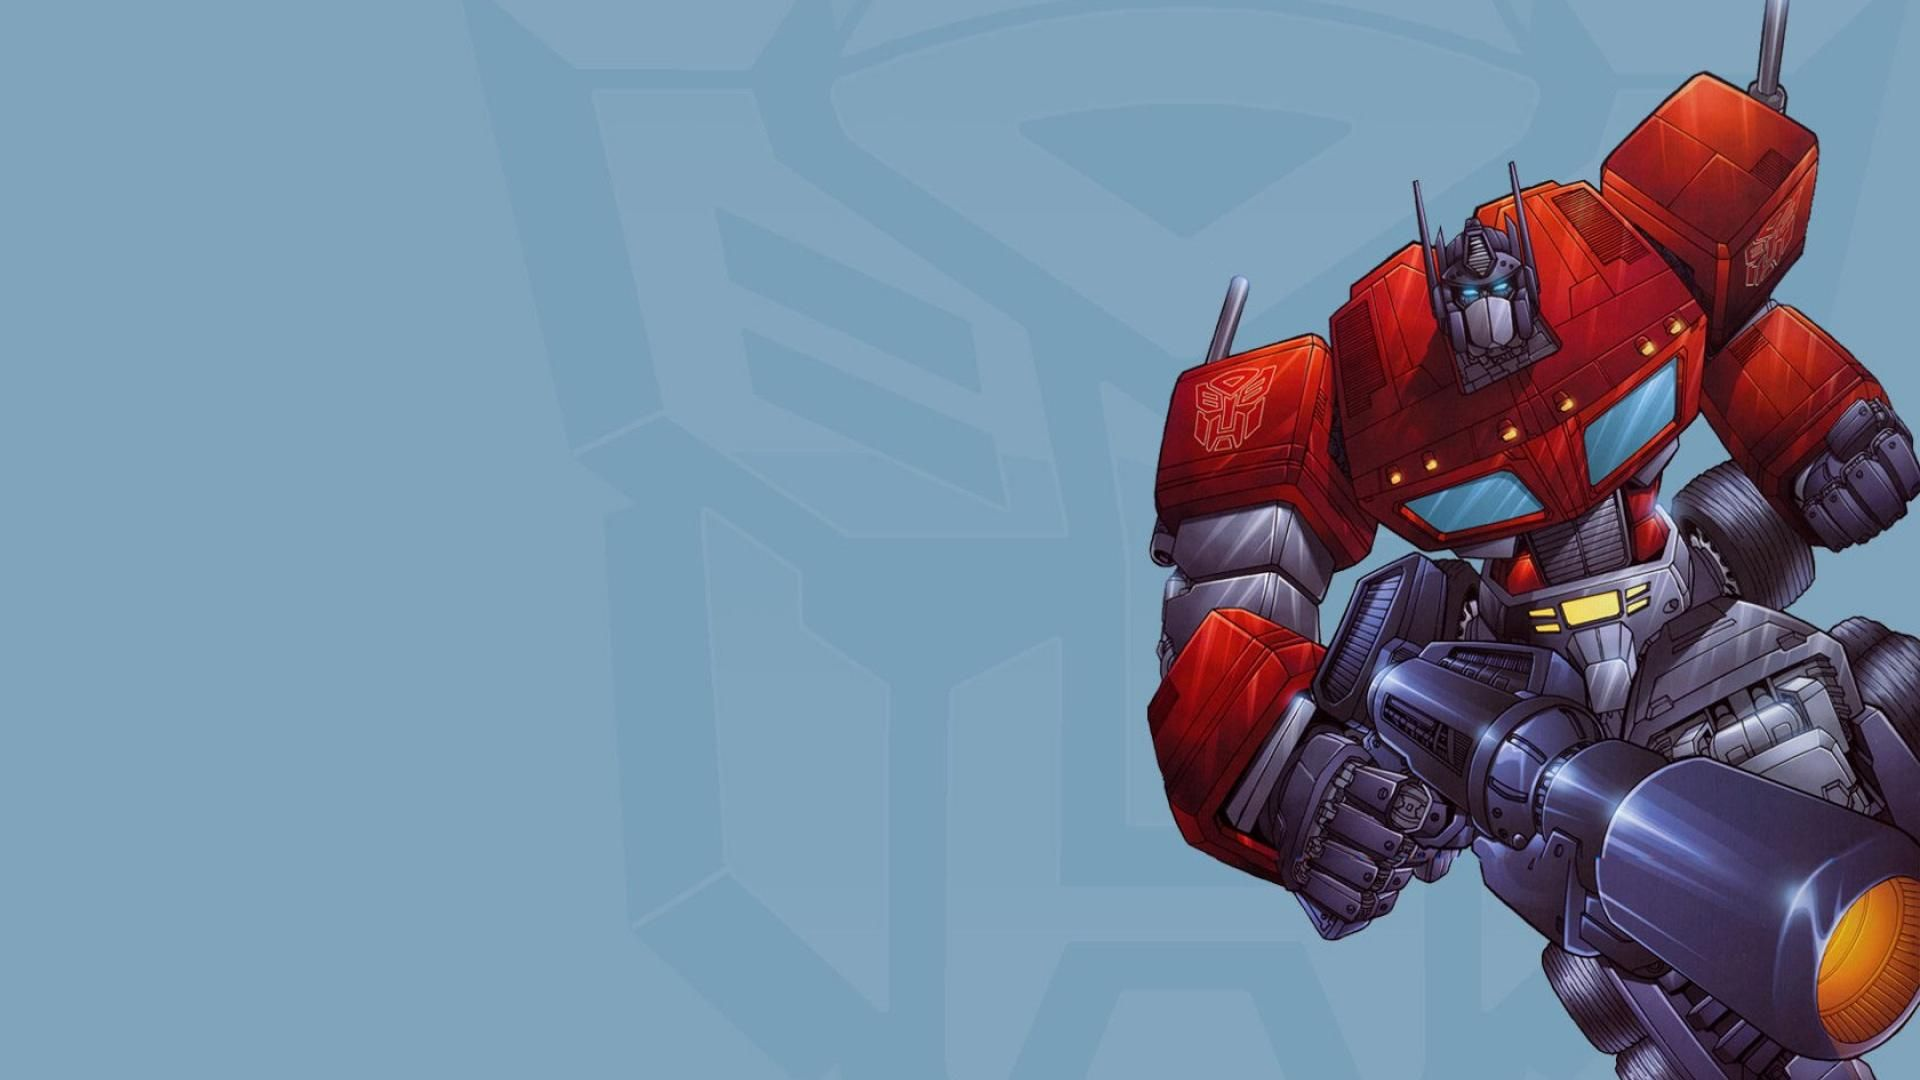 Transformers Cartoon Wallpaper Simplexpict1storg